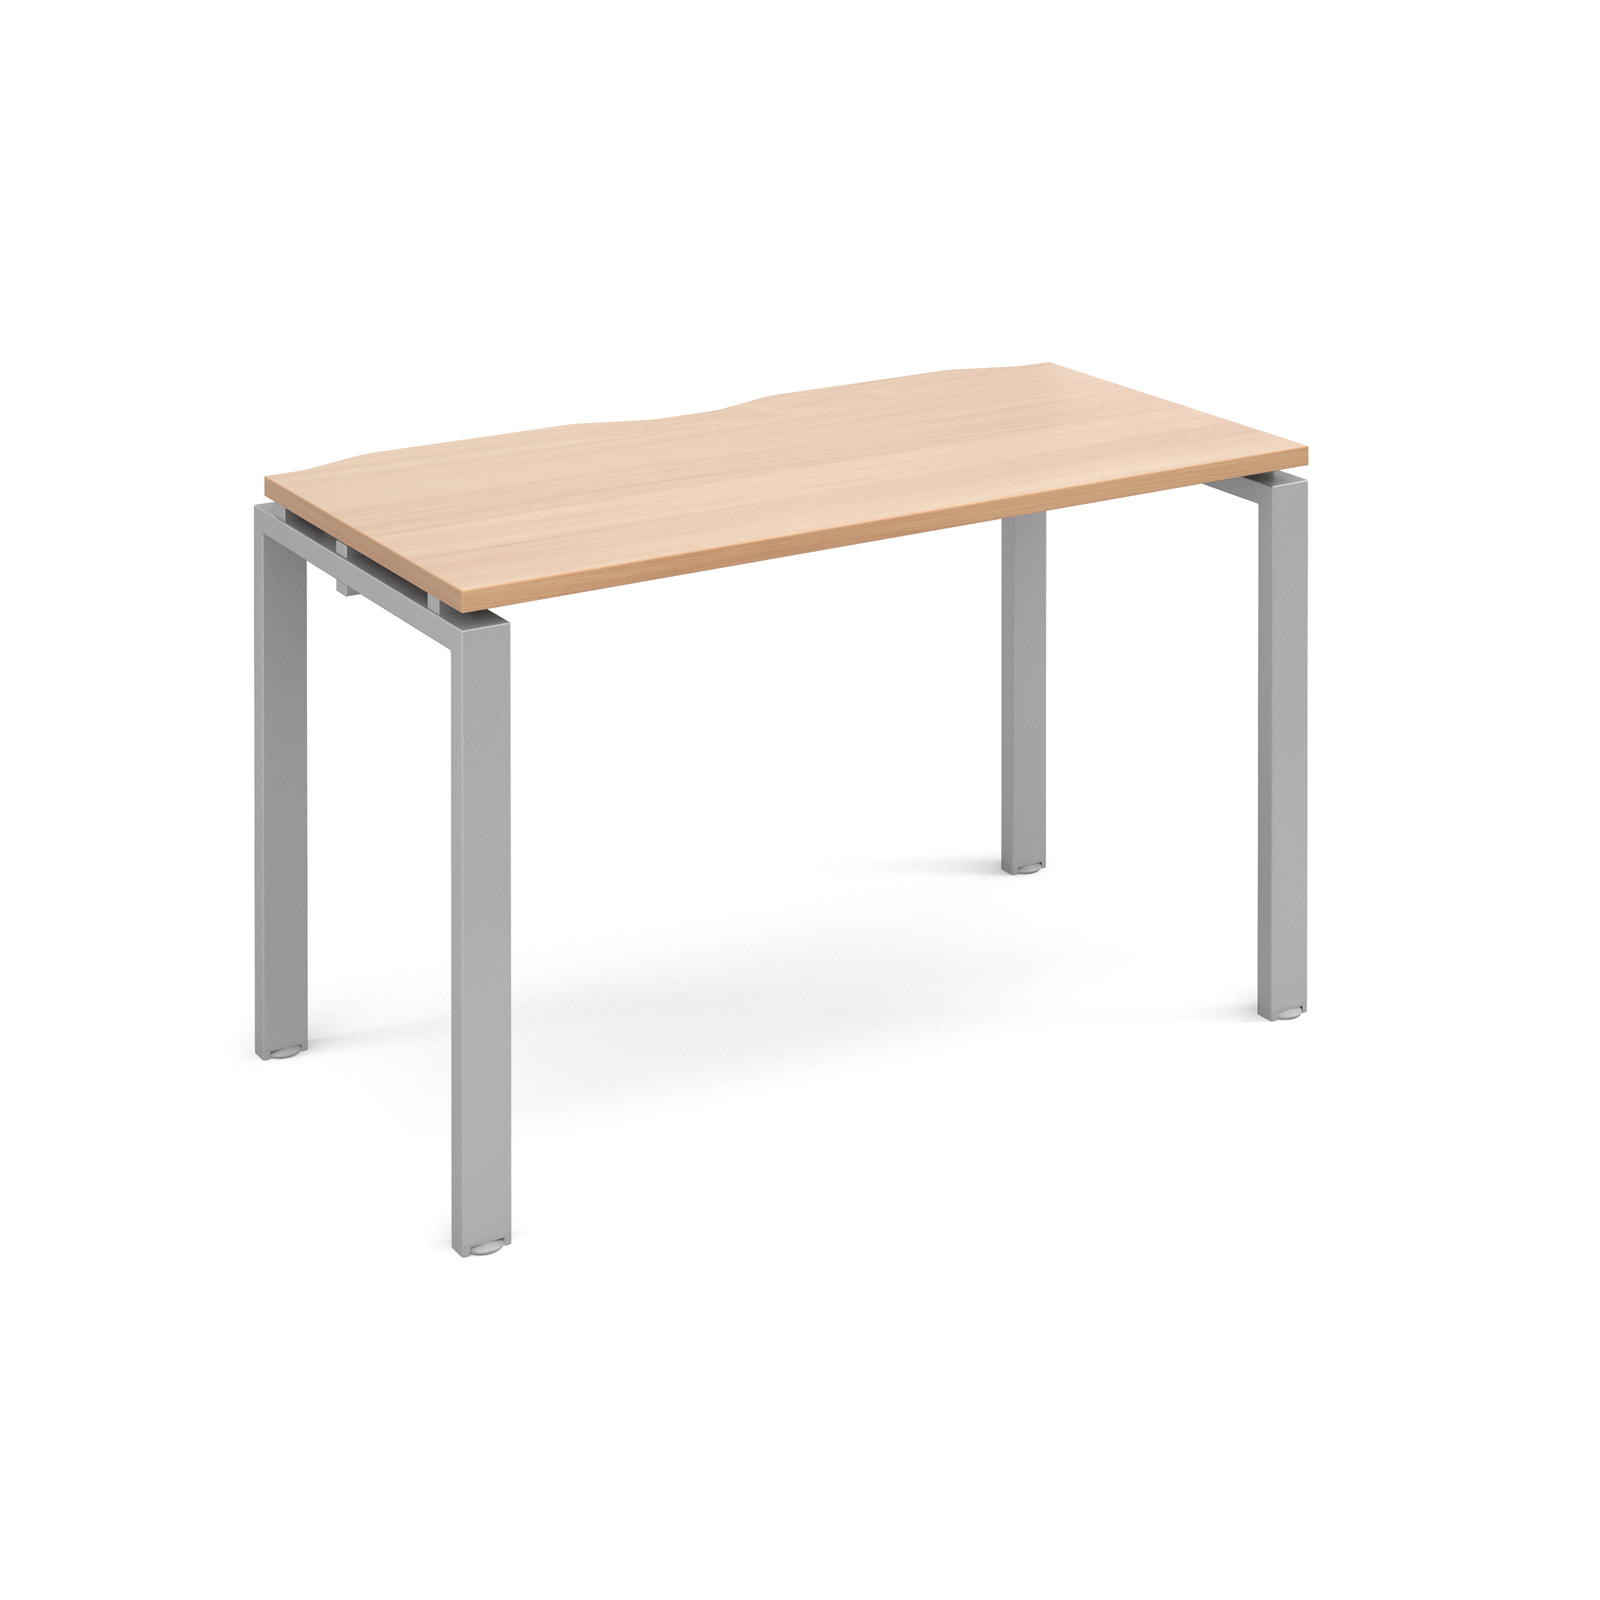 Dams Adapt II Single Bench Desk